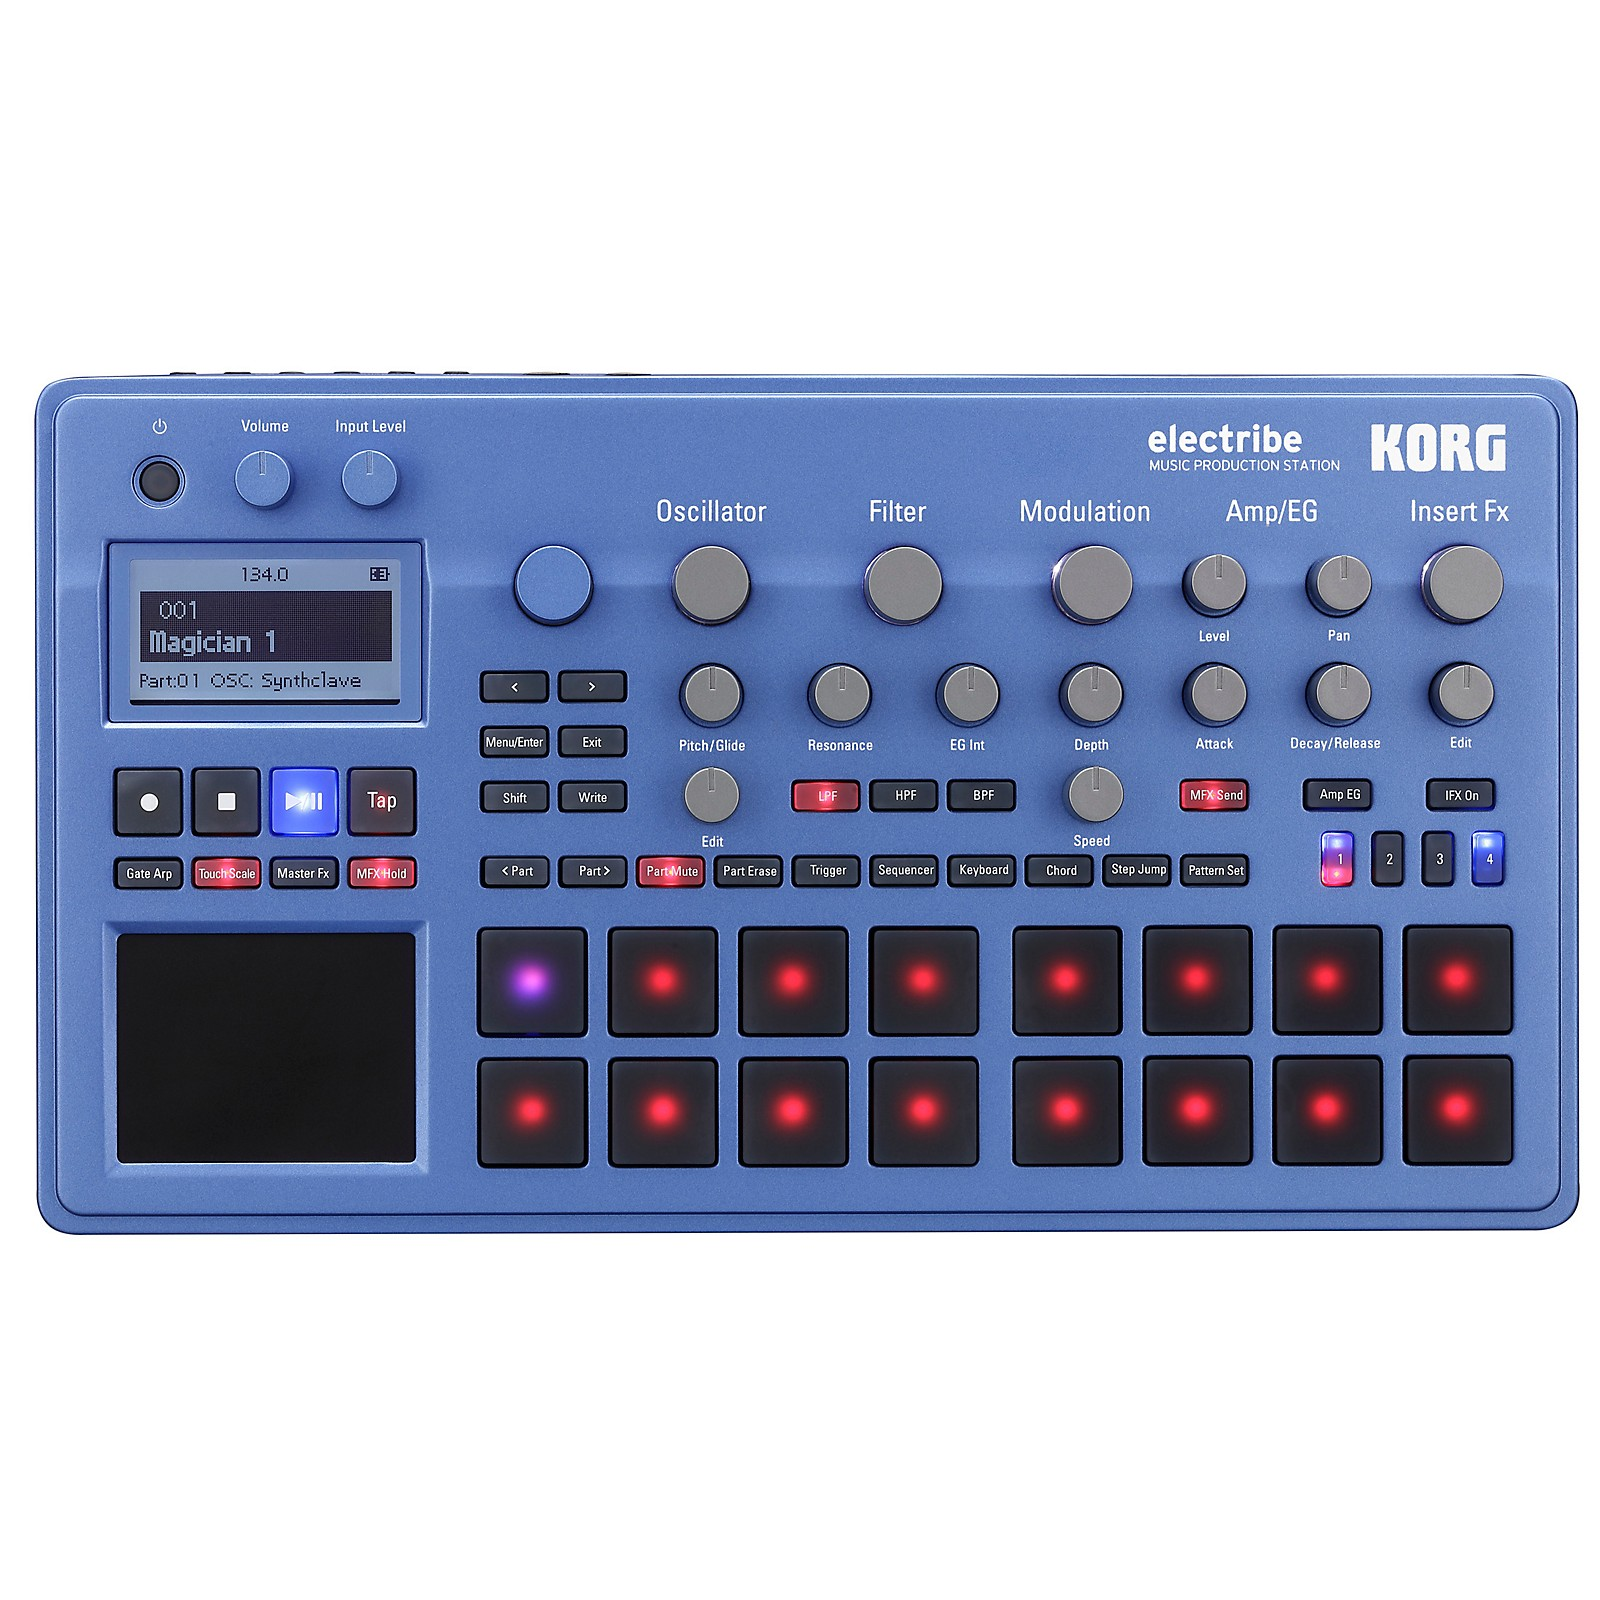 Korg electribe Music Production Station Blue Edition